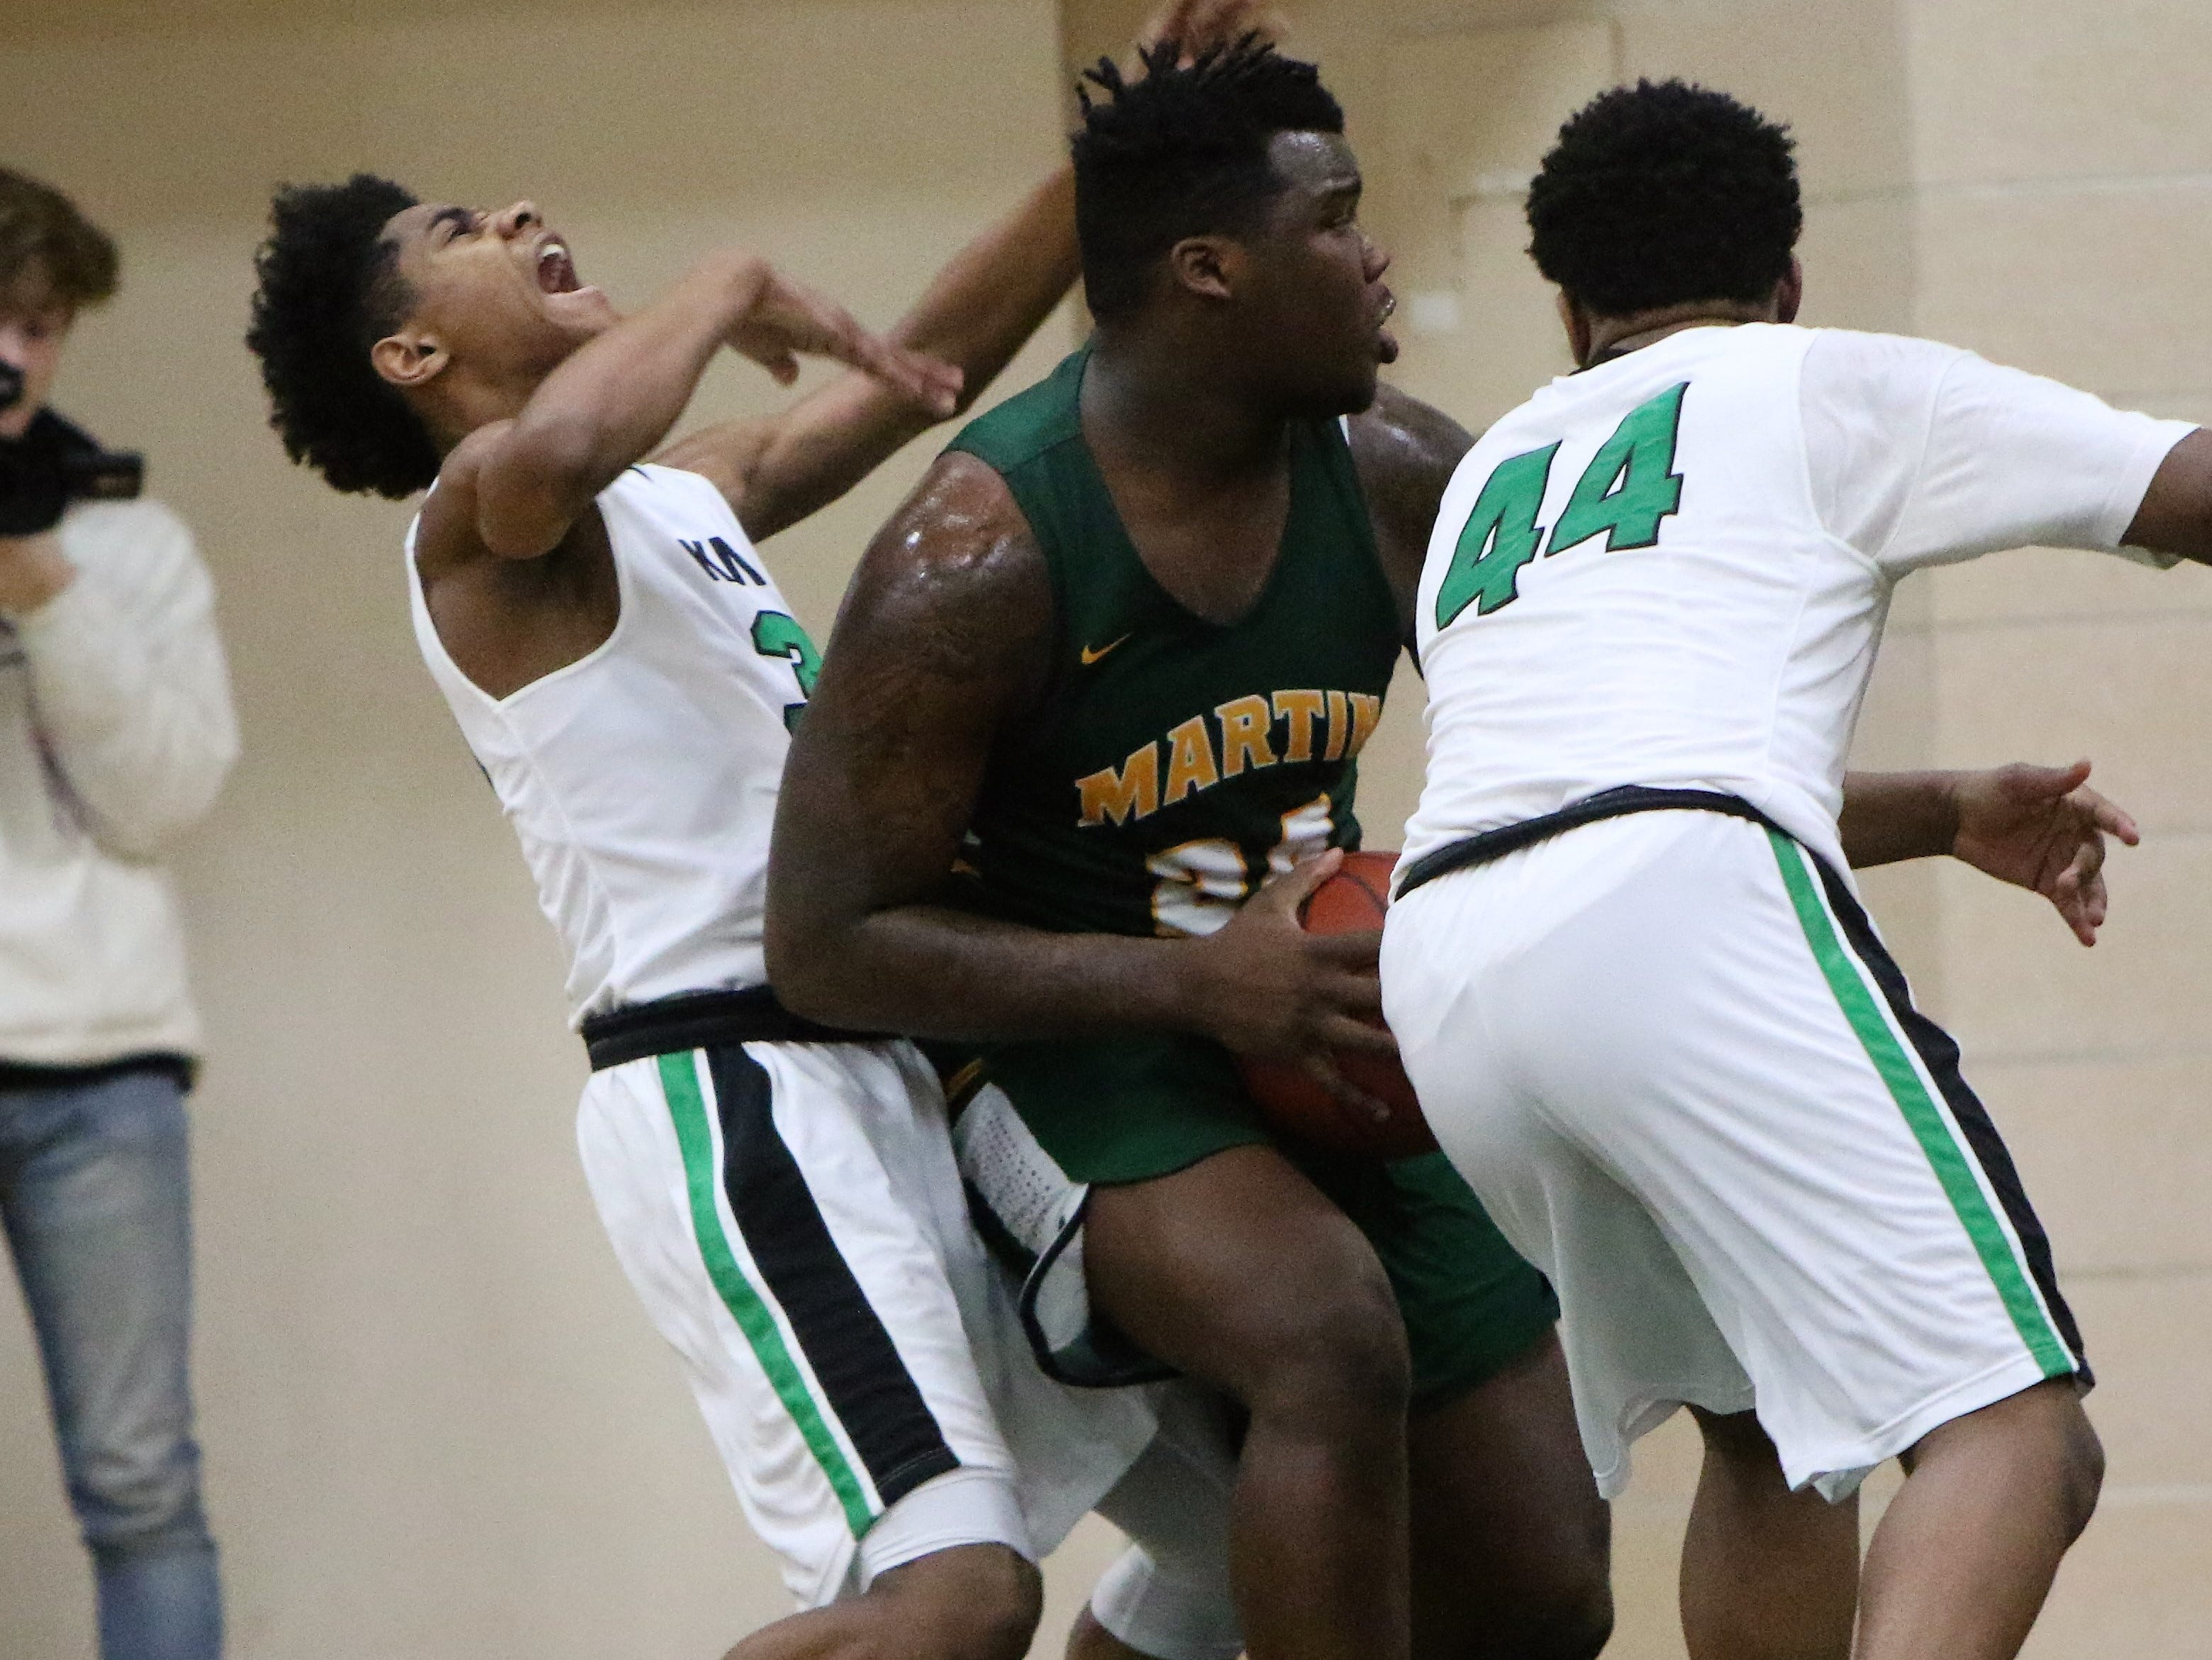 Dominican guard Ronald Kirk Jr. attempts to take a charge from Martin Luther forward Jeramie King on Jan. 15, 2019.